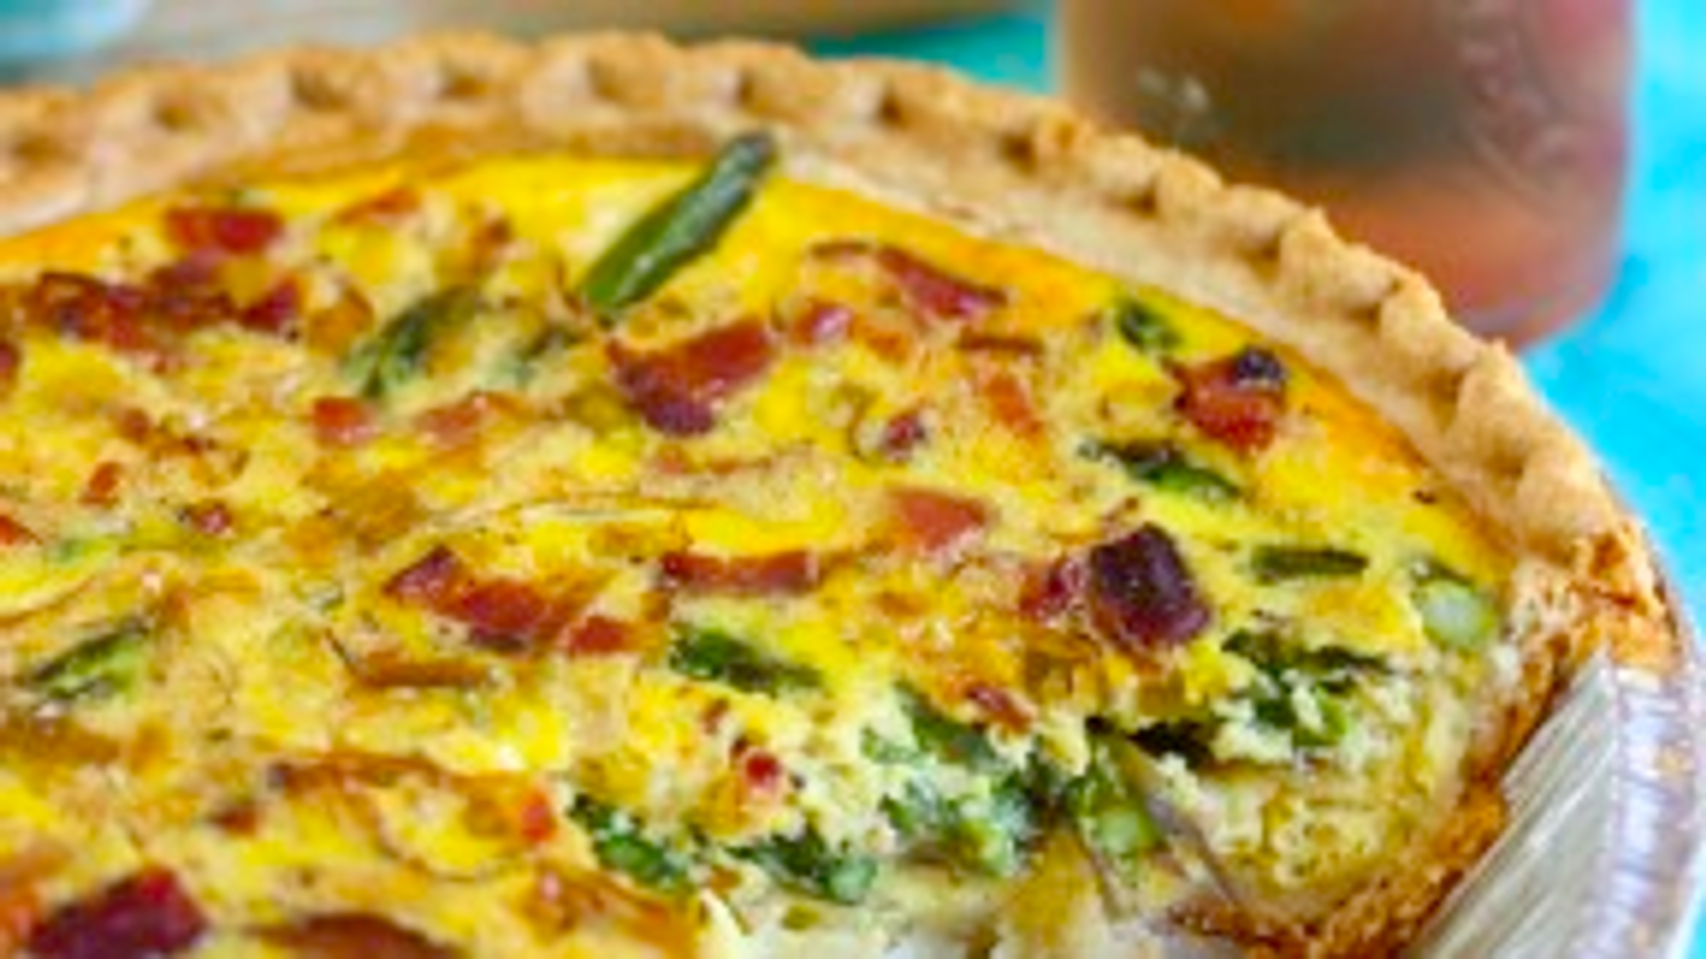 The Bachelor's Kitchen » Asparagus, Leek, and Bacon Quiche